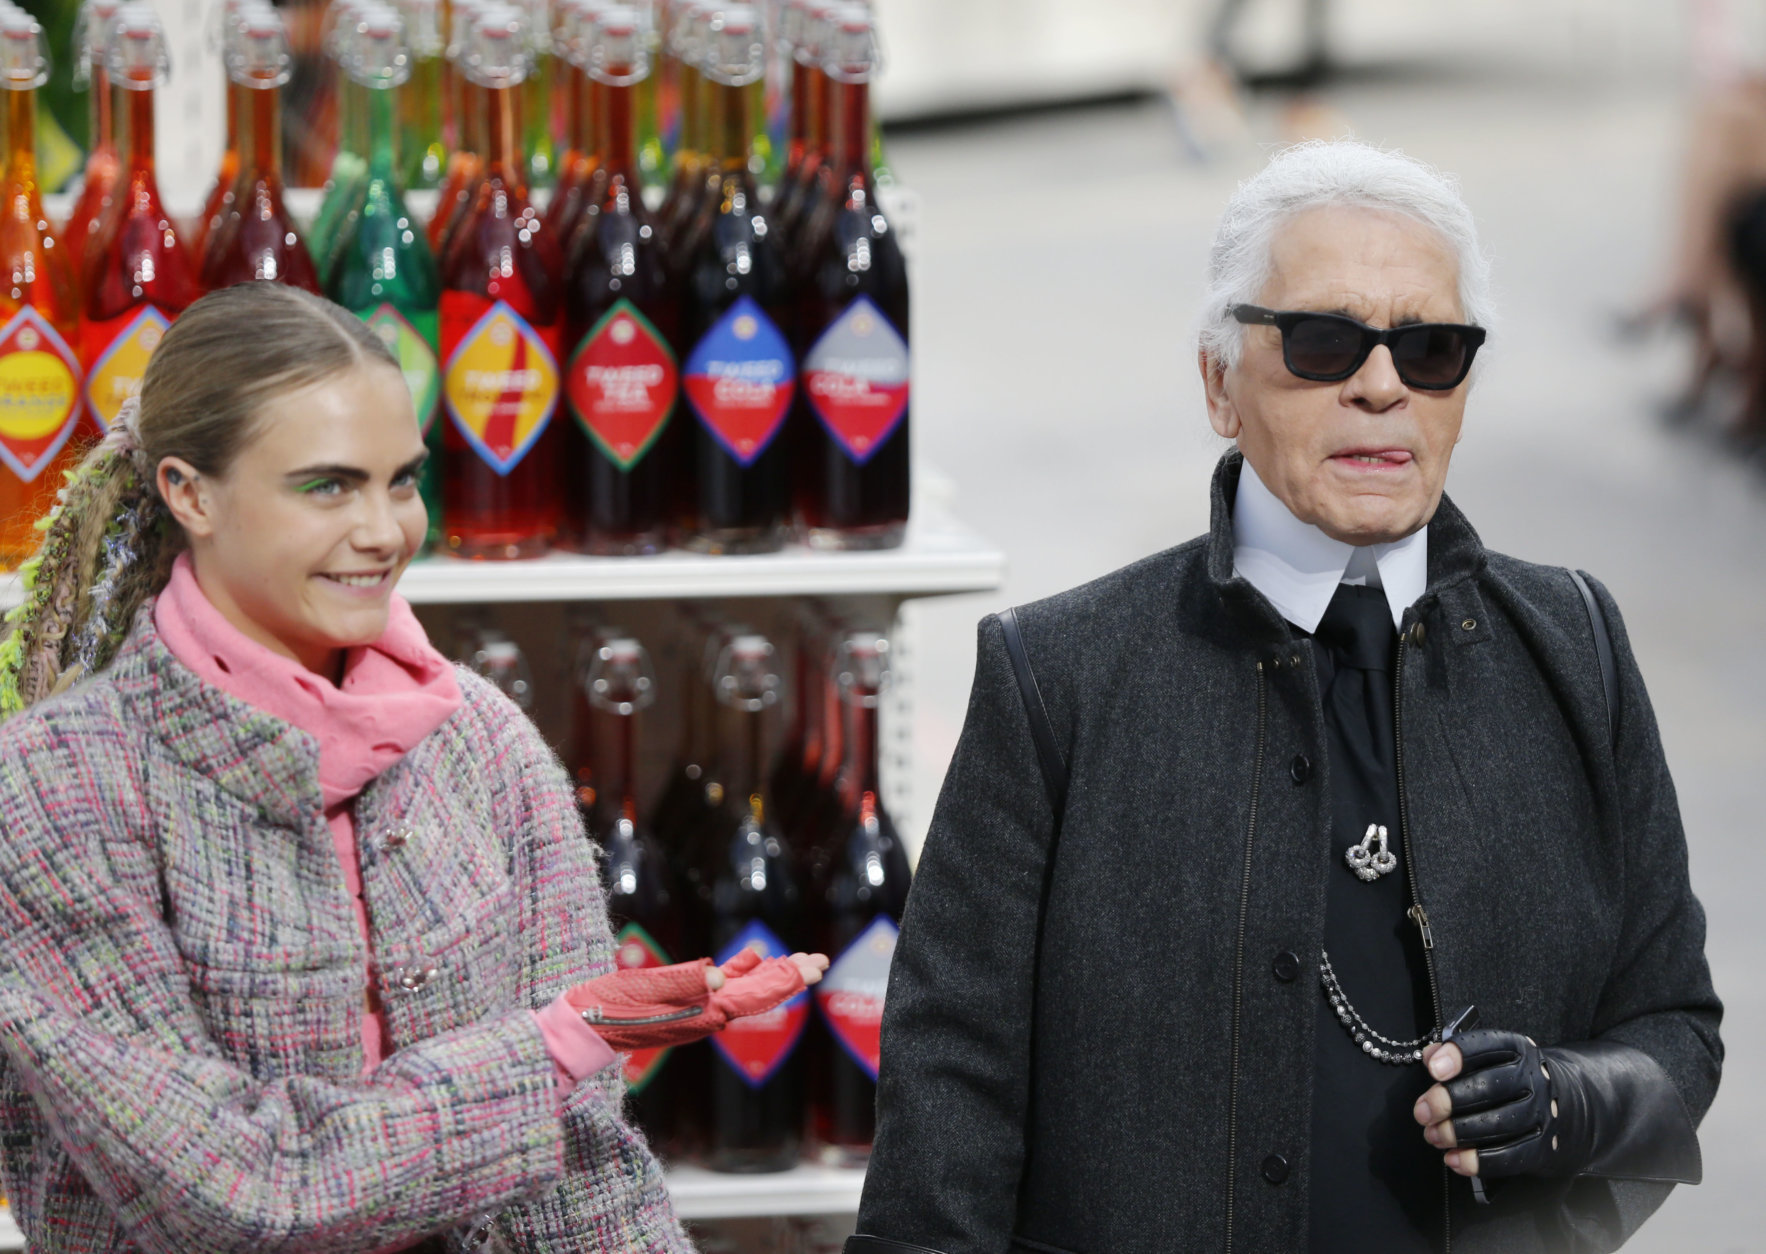 Model Cara Delevingne gestures towards German fashion designer Karl Lagerfeld after the presentation of Chanel's ready to wear fall/winter 2014-2015 fashion collection presented in Paris, Tuesday, March 4, 2014. (AP Photo/Jacques Brinon)